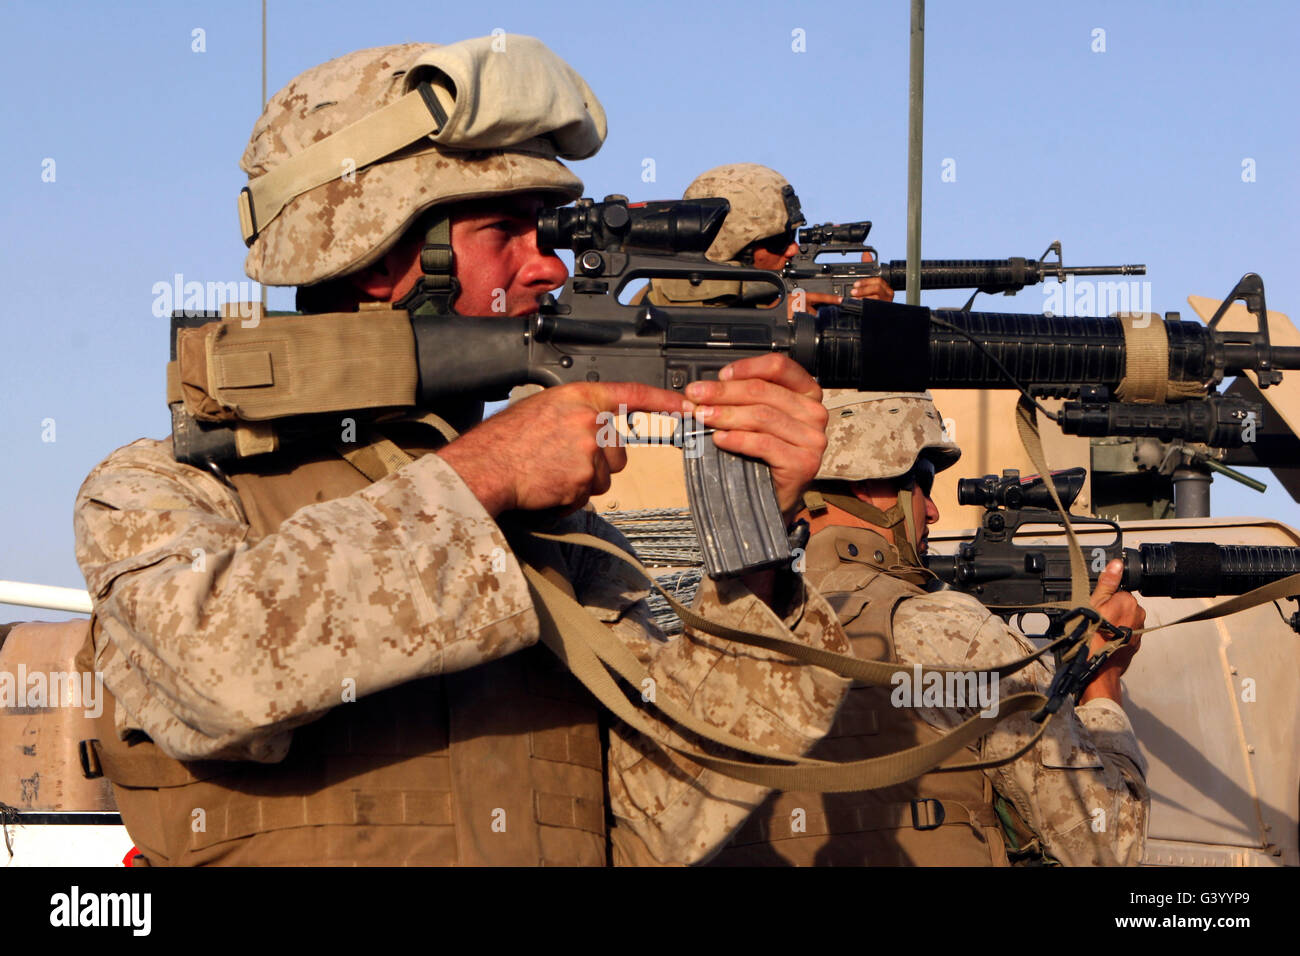 U.S. Marines sighting in on a suspicious group of people in Michigan, Iraq. - Stock Image